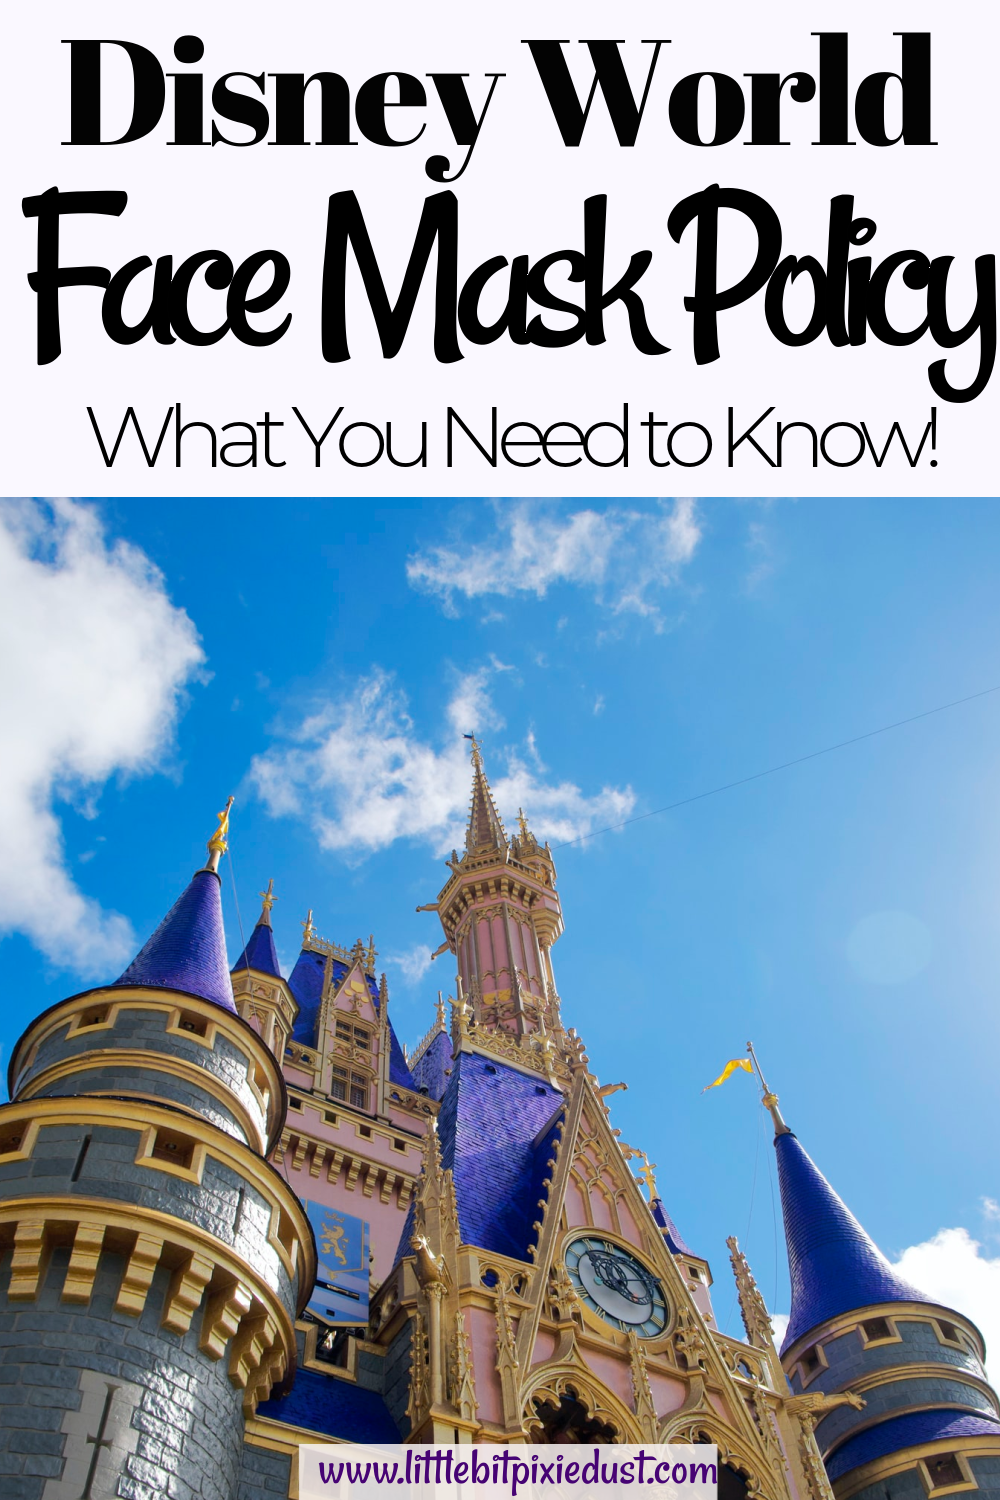 disney face mask policy